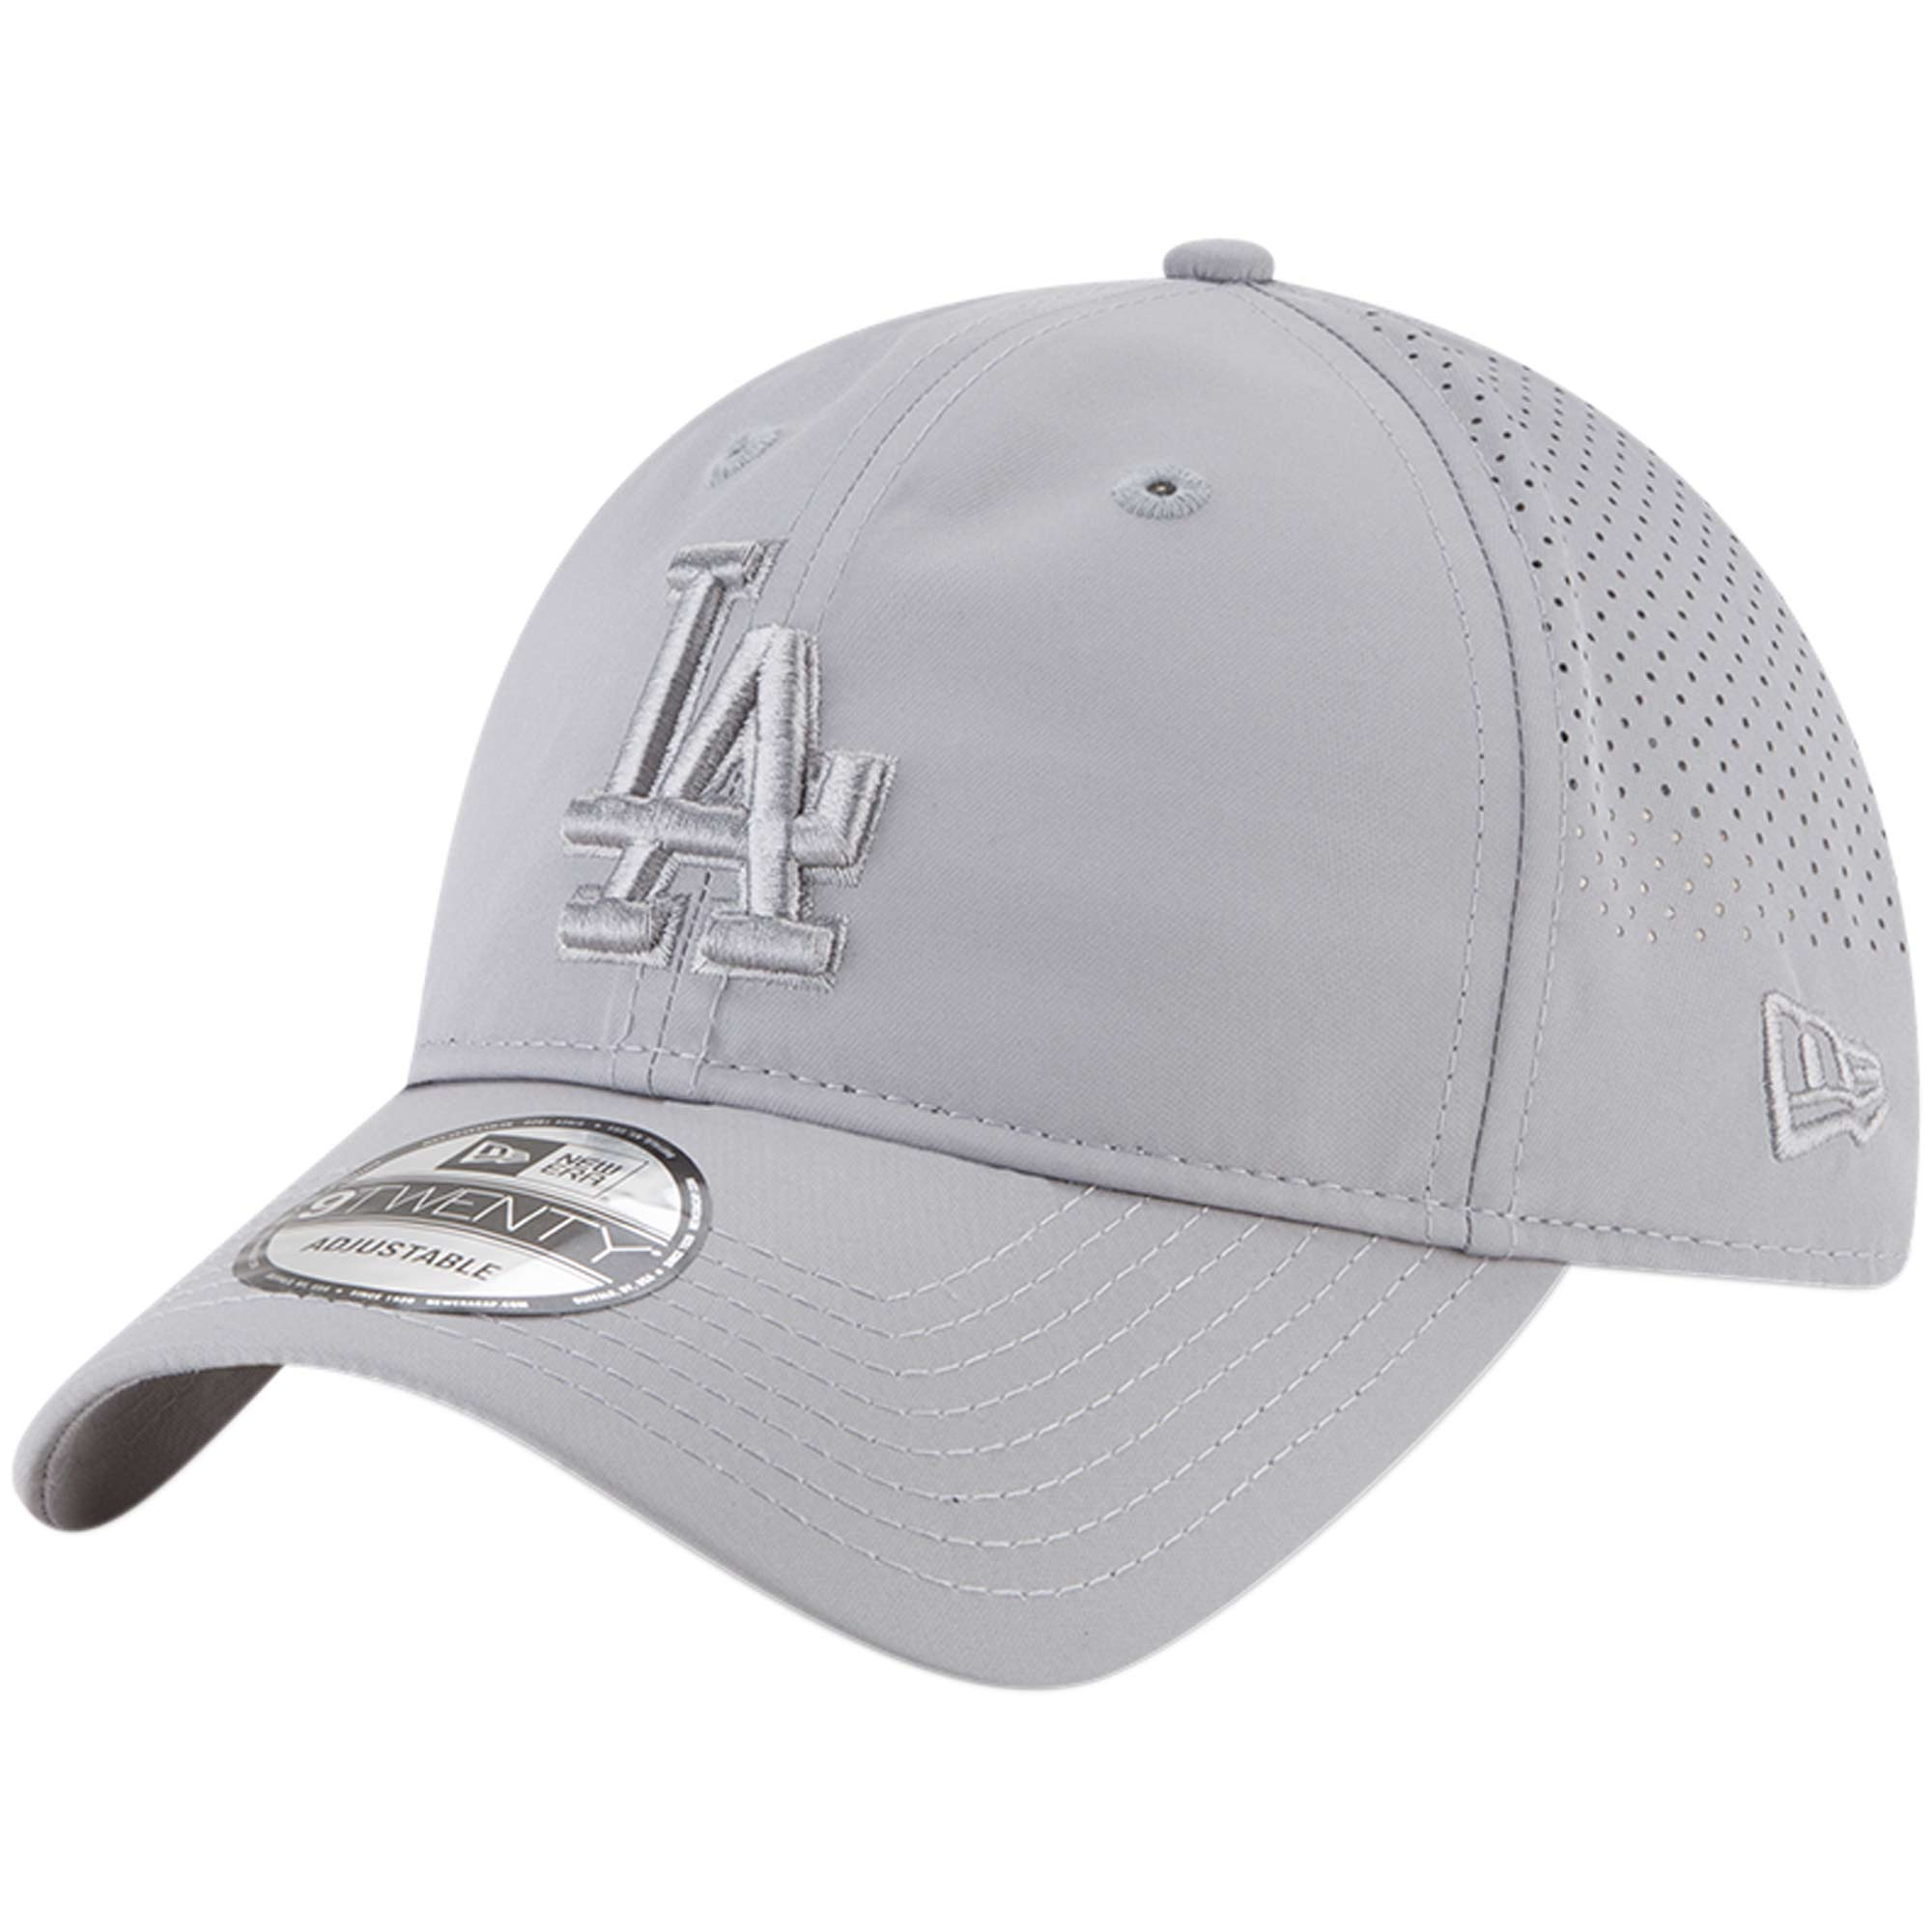 the best attitude 8b27a 9f14c spain adjustable la baseball cap 4afbd 9b610  get product image los angeles  dodgers new era perforated tone 9twenty adjustable hat gray osfa 32982